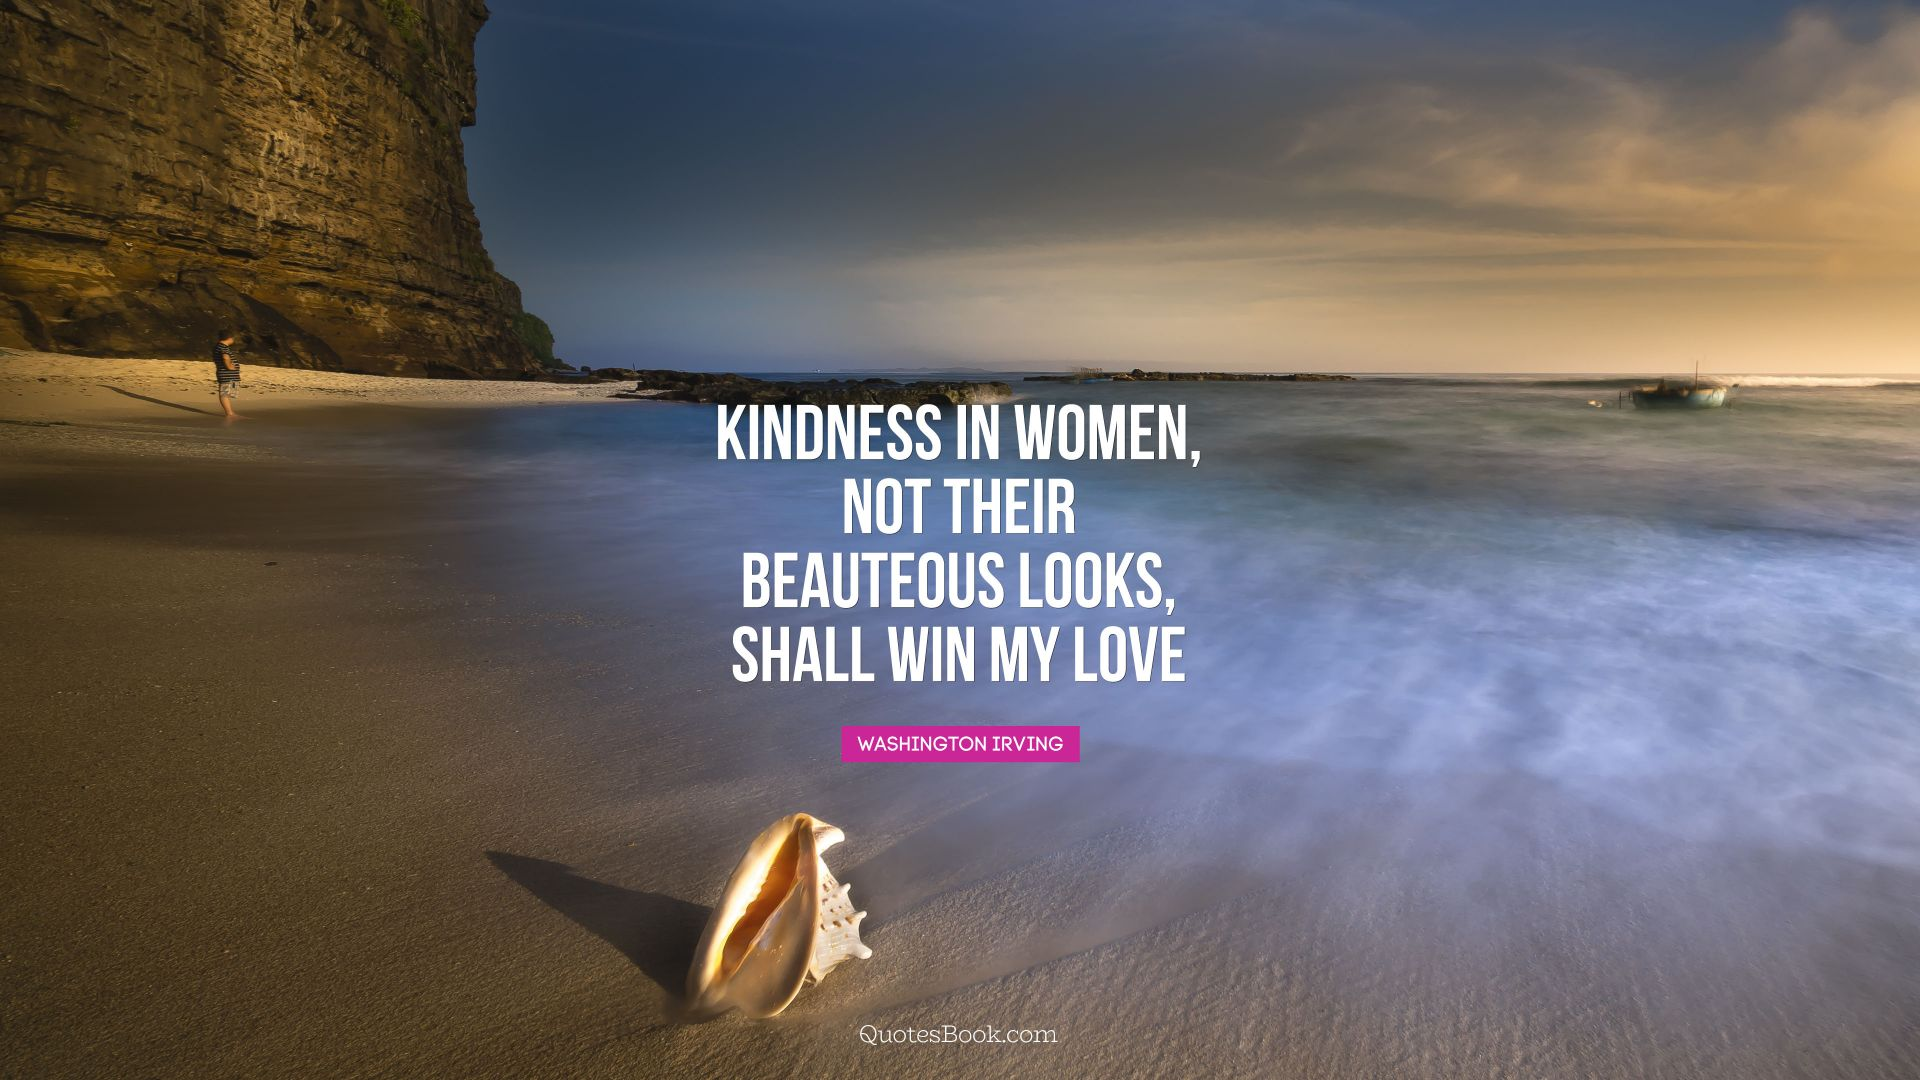 Kindness in women, not their beauteous looks, shall win my love. - Quote by Washington Irving